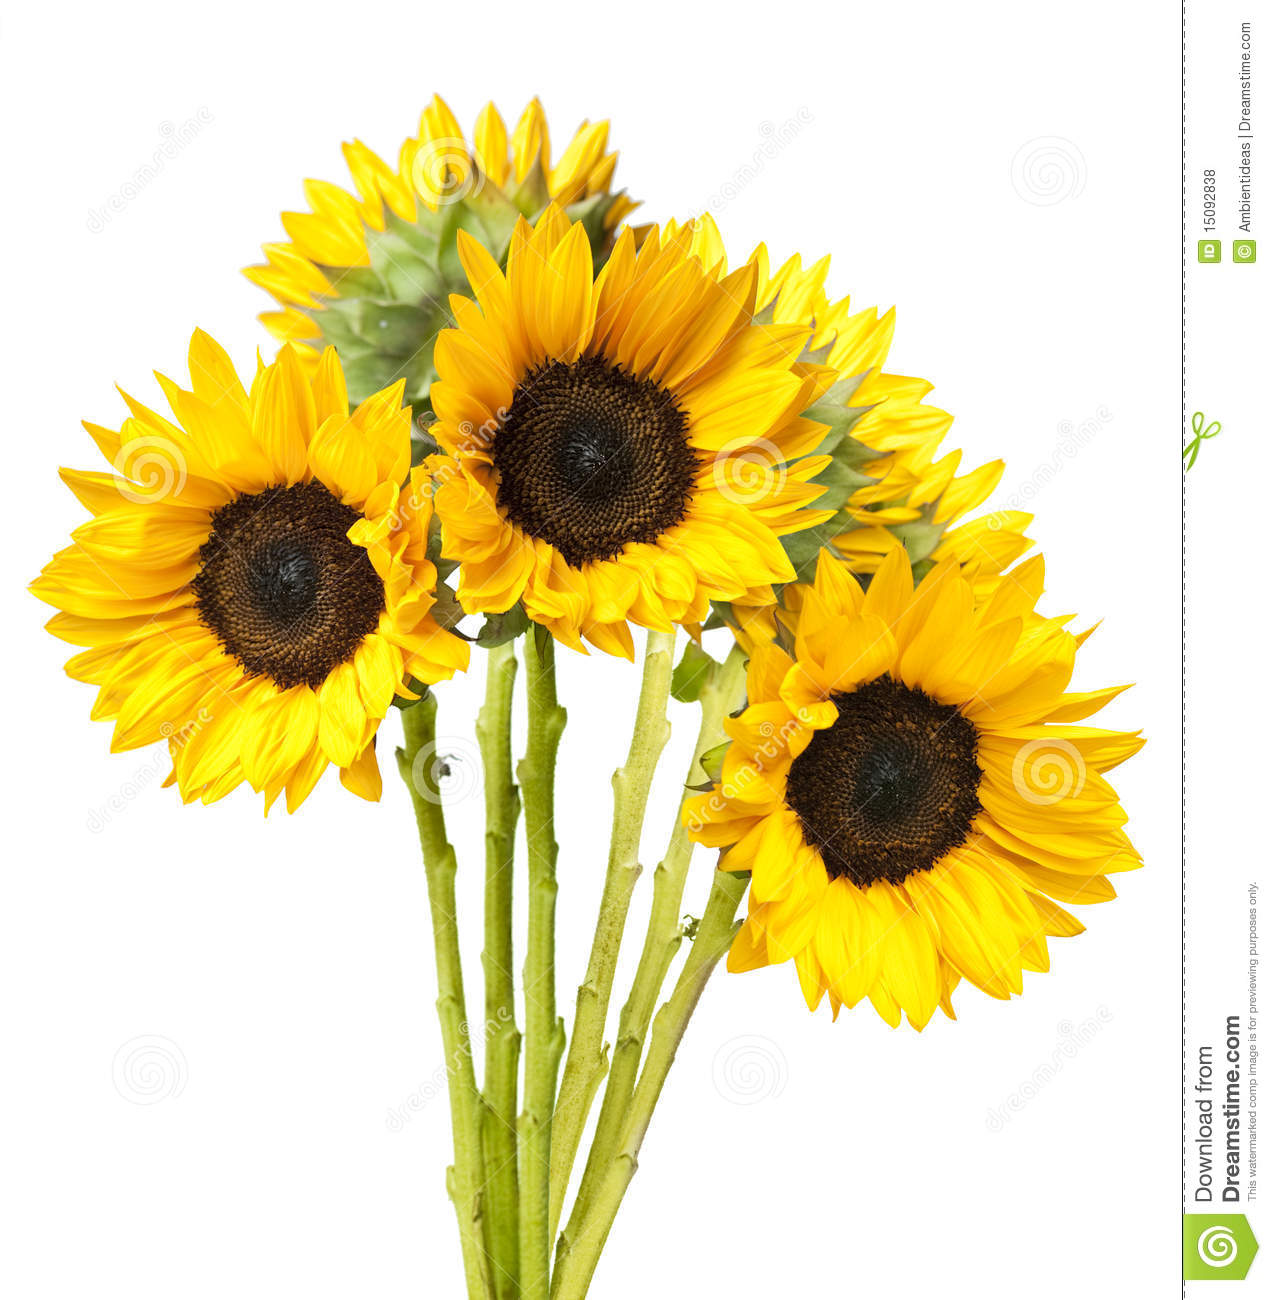 Sunflower Bouquet Clipart - Clipart Kid